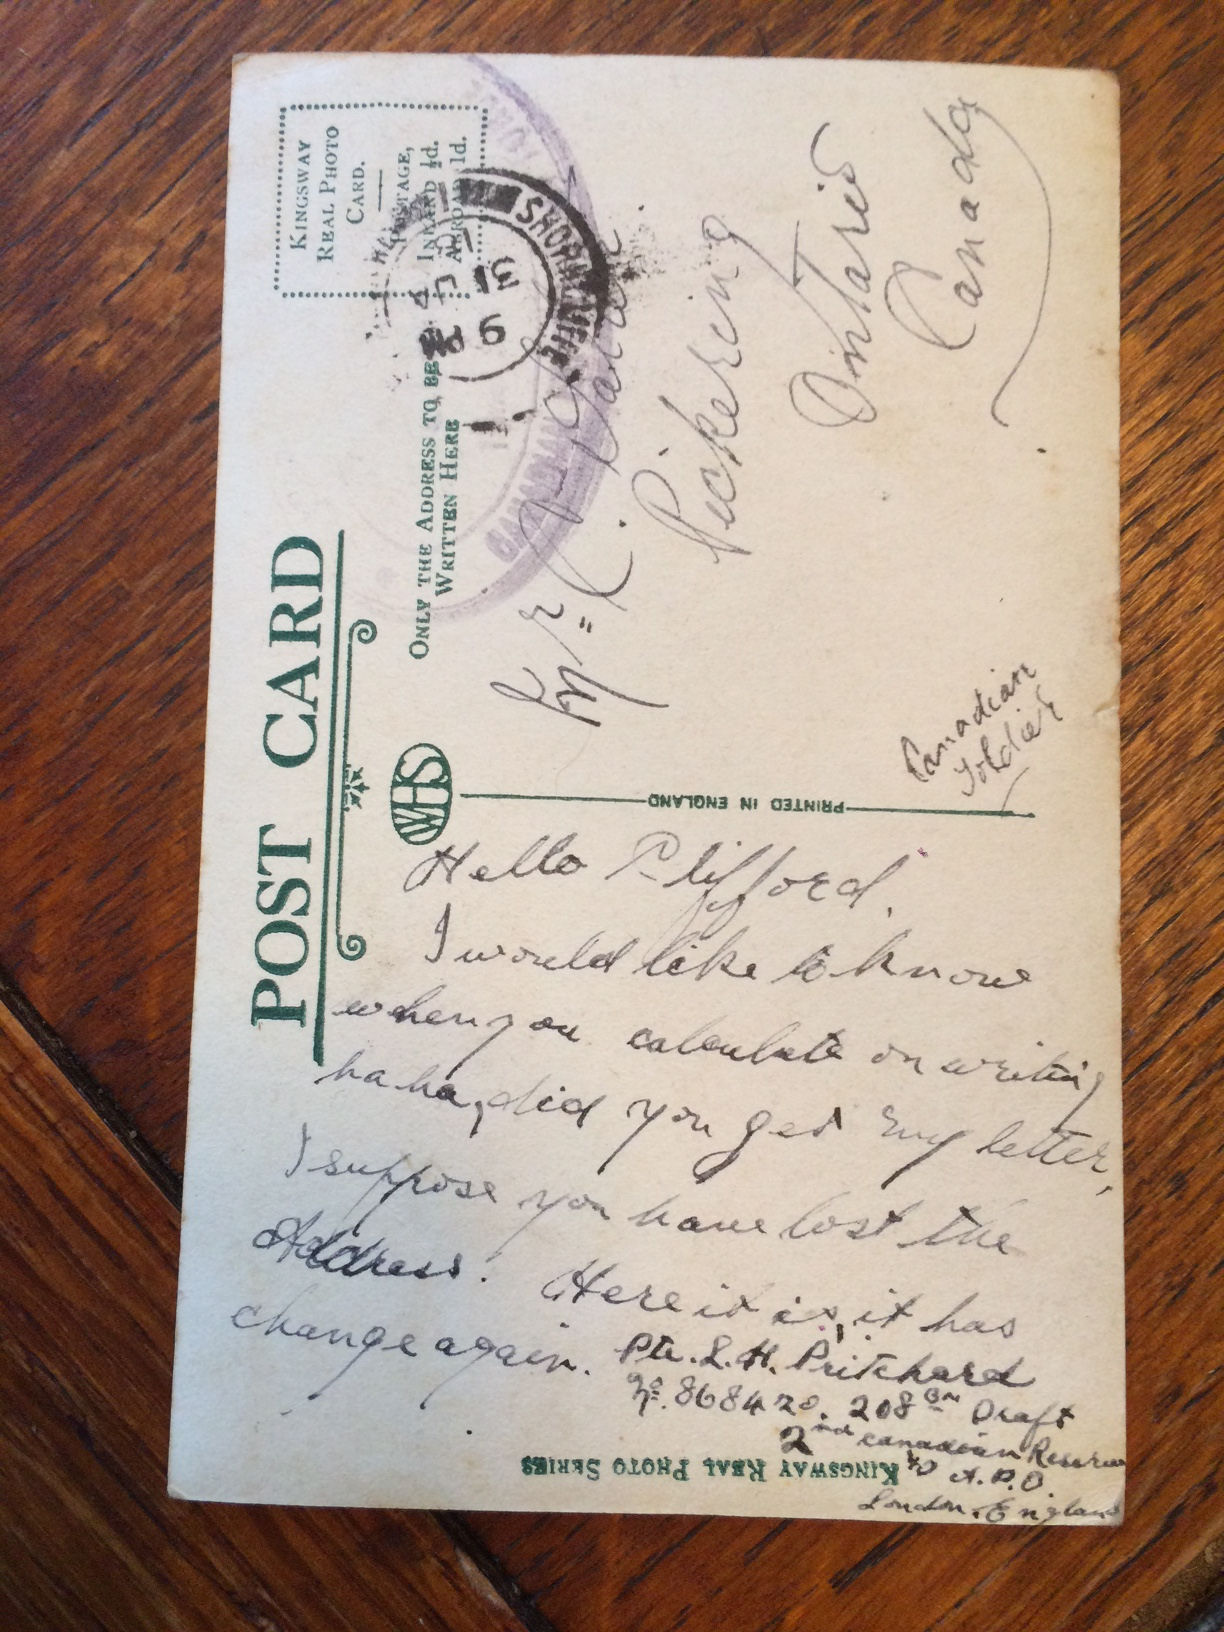 Post Card– Letter written to his friend Clifford in Pickering, Ont